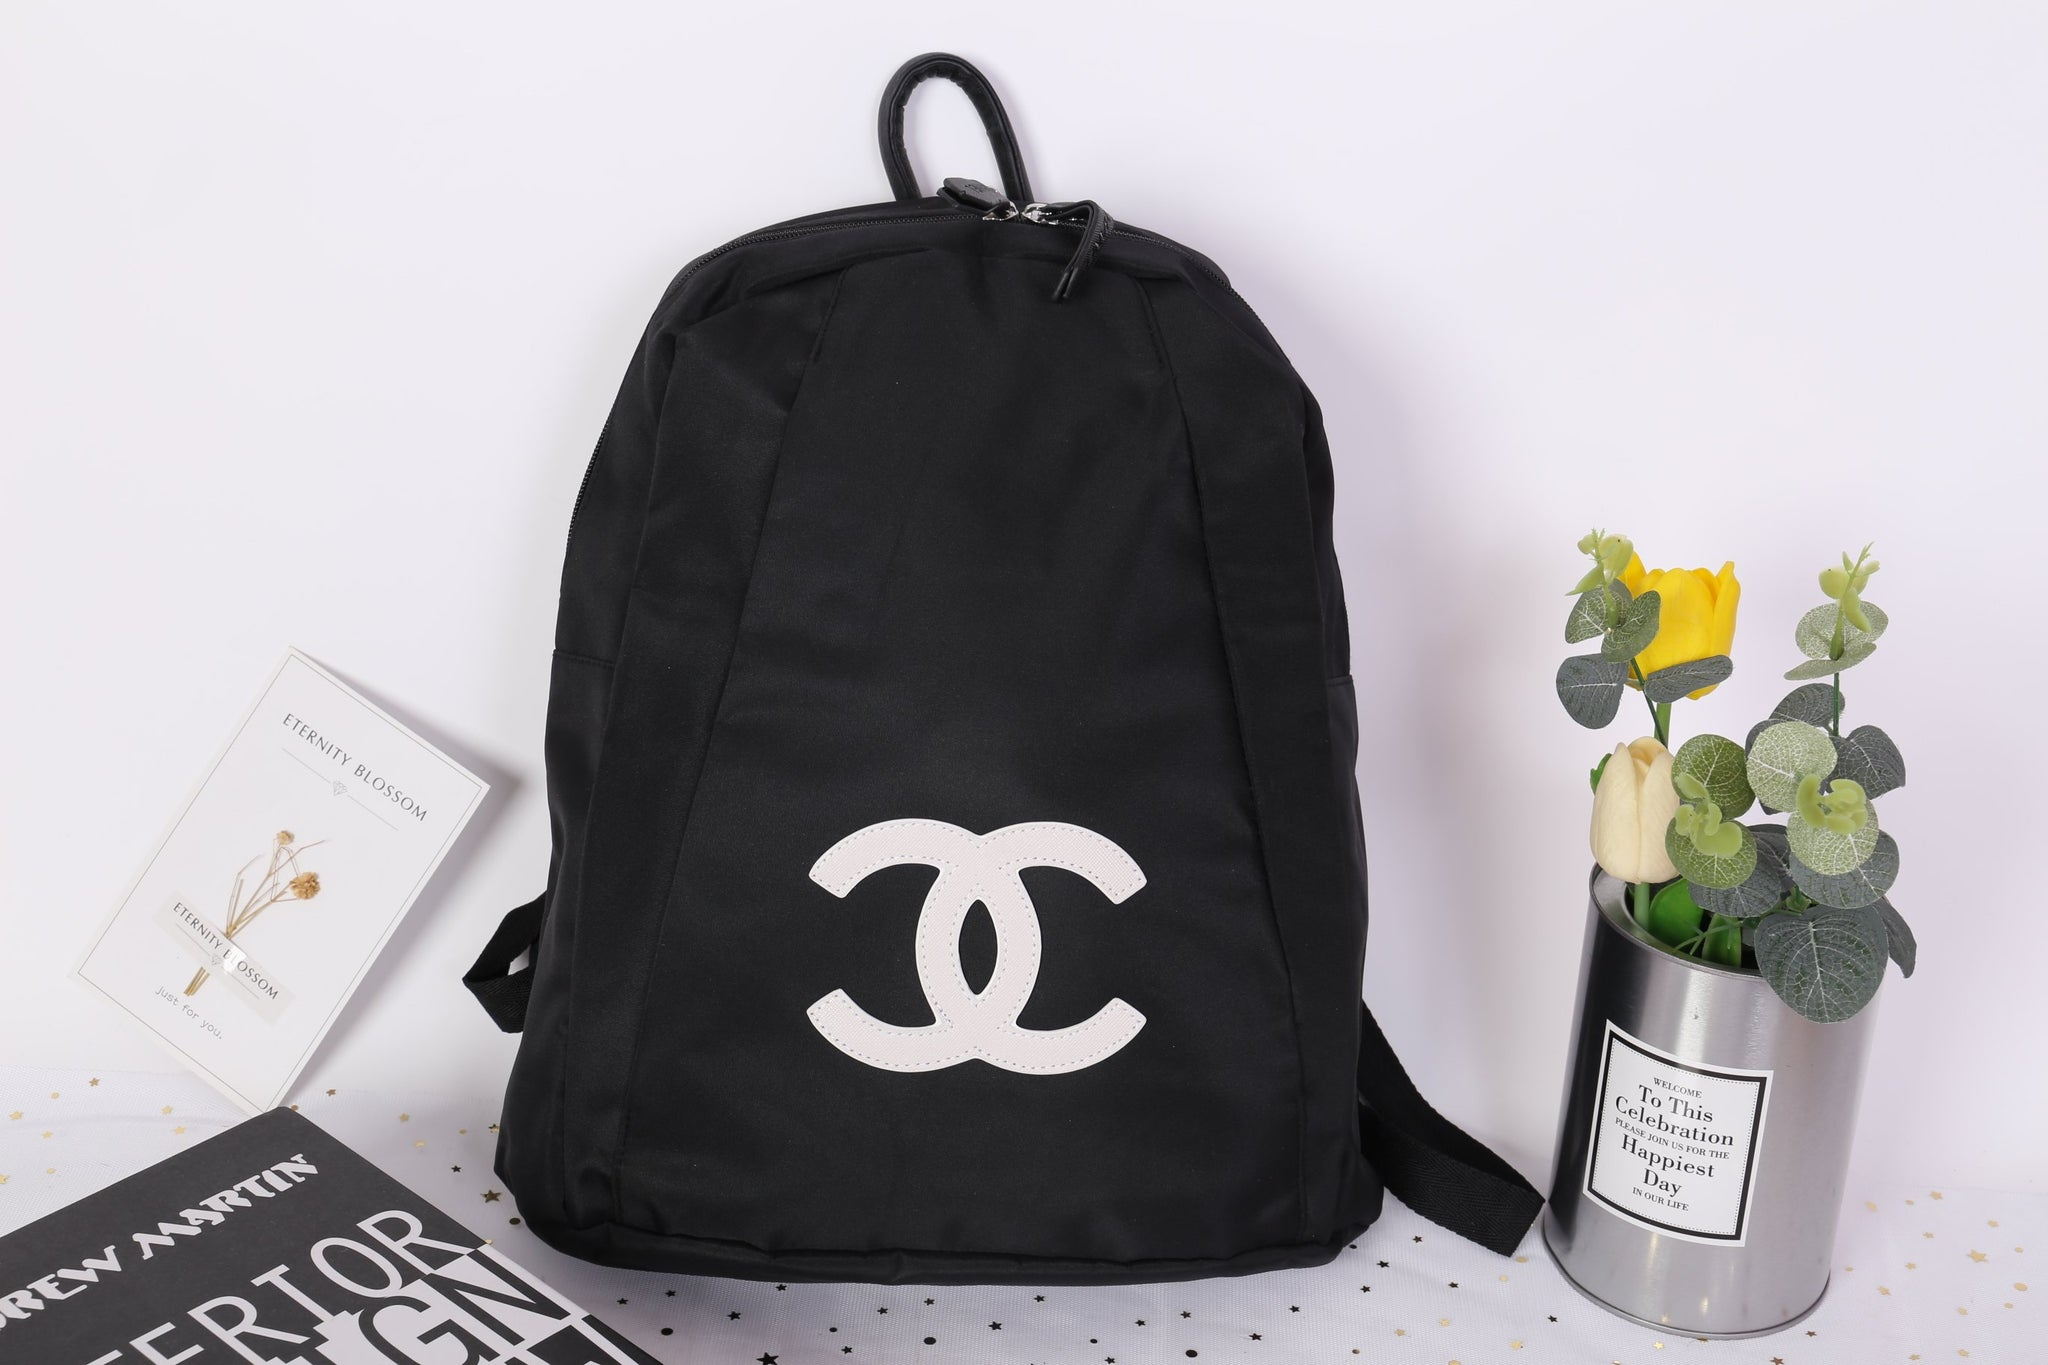 a29c95072109 ... Chanel White CC Logo Backpack Makeup Rucksack Travel Gym Duffle Bag  Large Vip Gift - PARTYMOOD ...